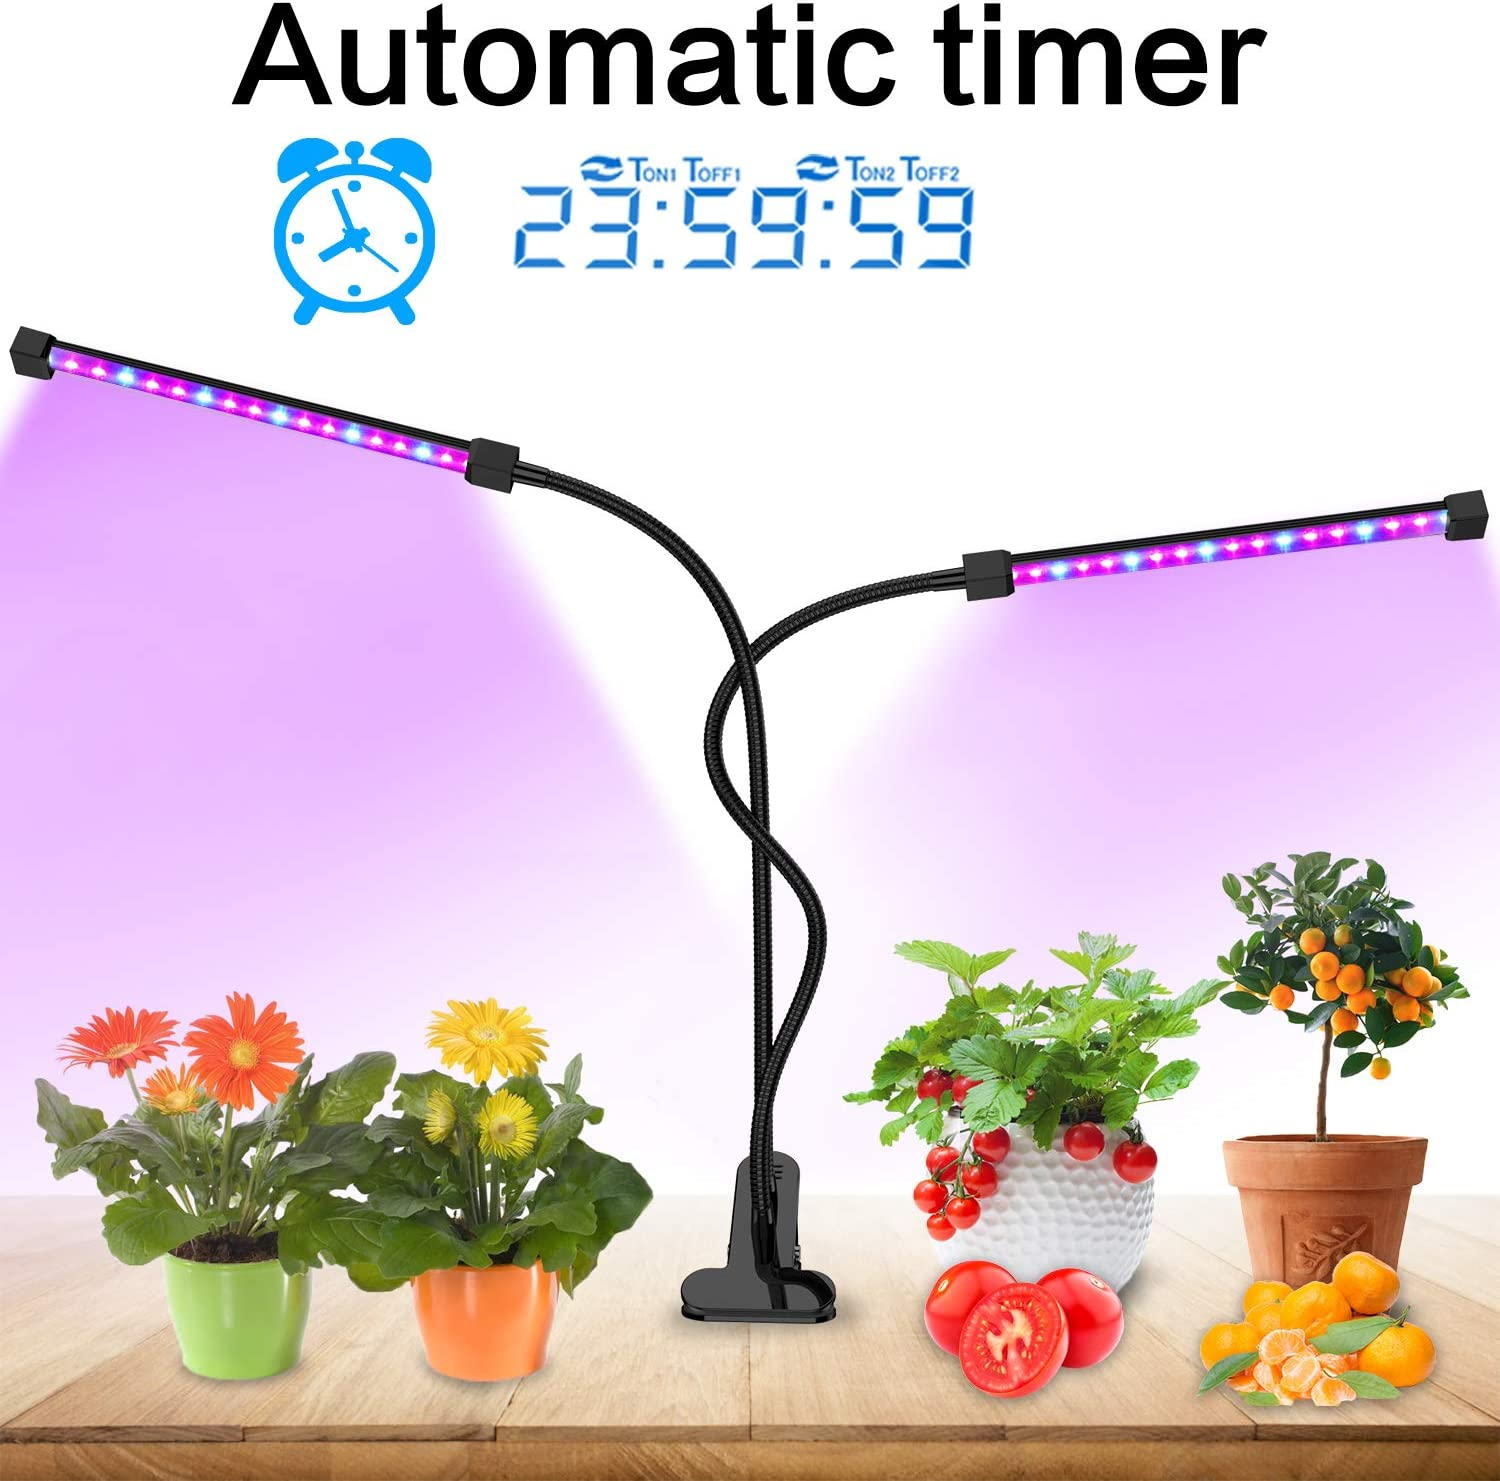 Lovebay Grow Light Auto Turn on Off 40 LED Dual Head Plant Grow Light with Red Blue Spectrum, Adjustable Gooseneck, 5 Dimmable Levels, for Indoor Plants Hydroponics Greenhouse